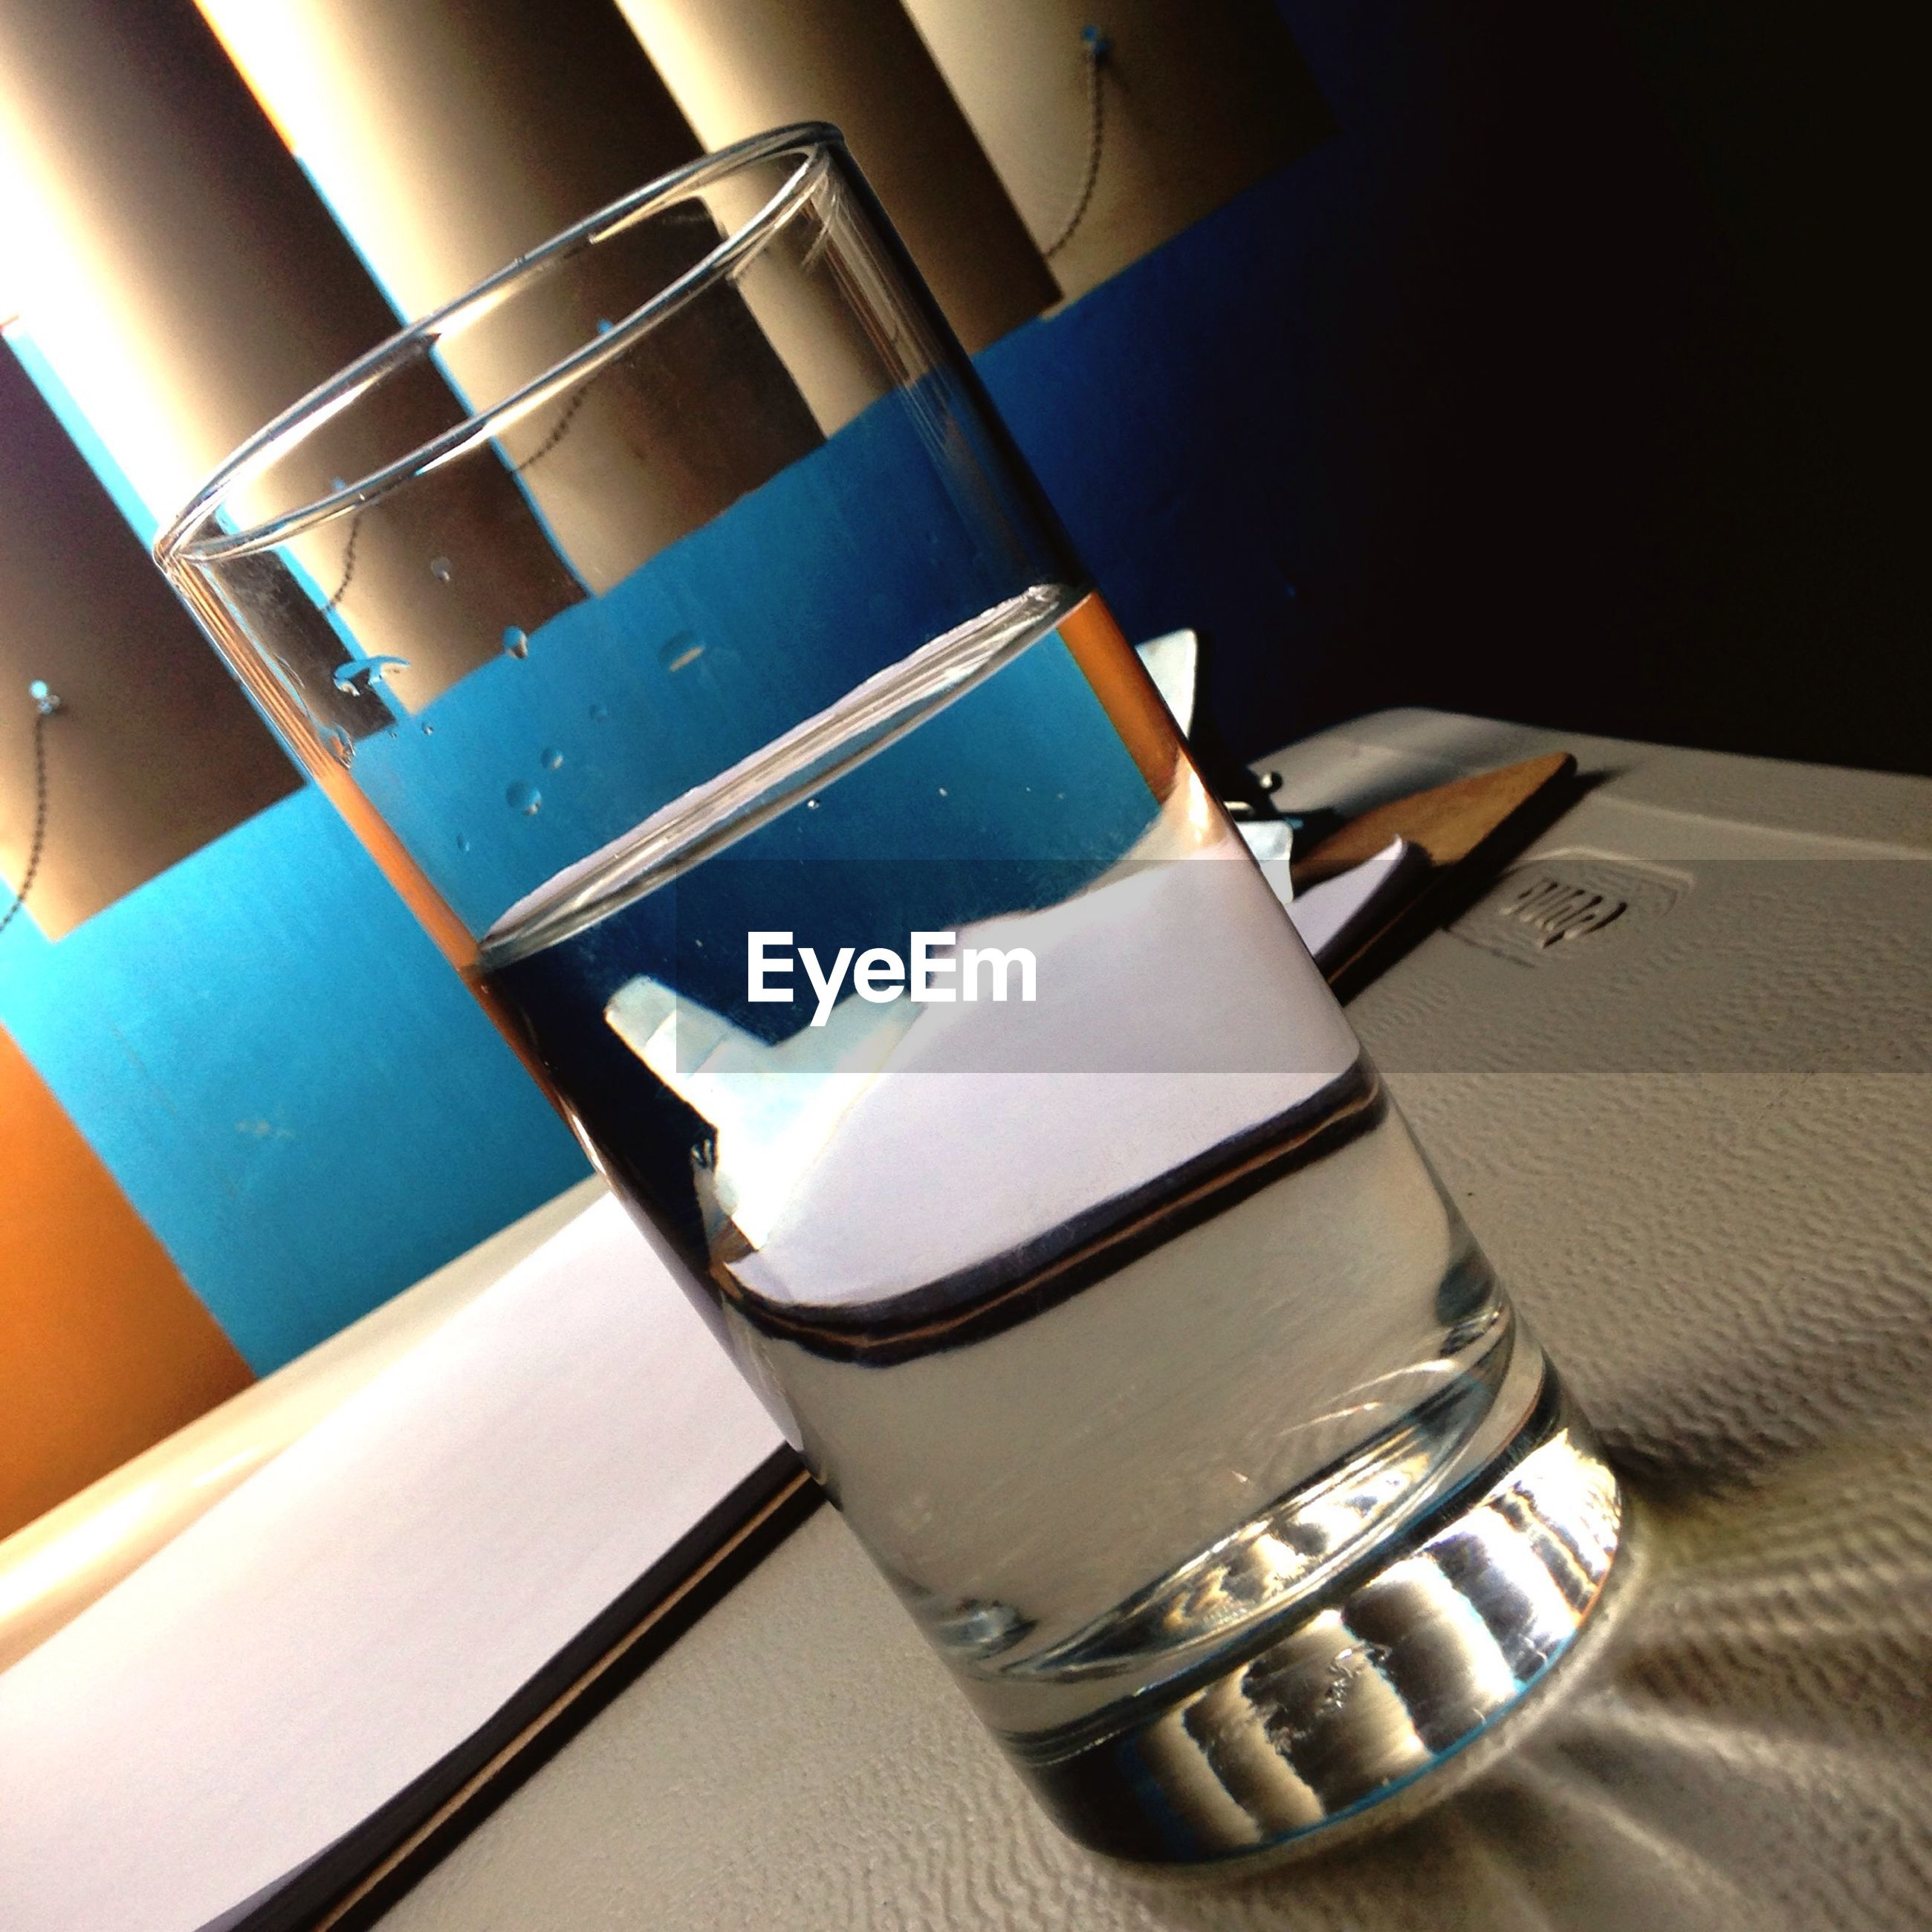 indoors, still life, close-up, table, no people, focus on foreground, absence, white color, metal, blue, empty, day, sunlight, high angle view, chair, drink, reflection, book, part of, single object